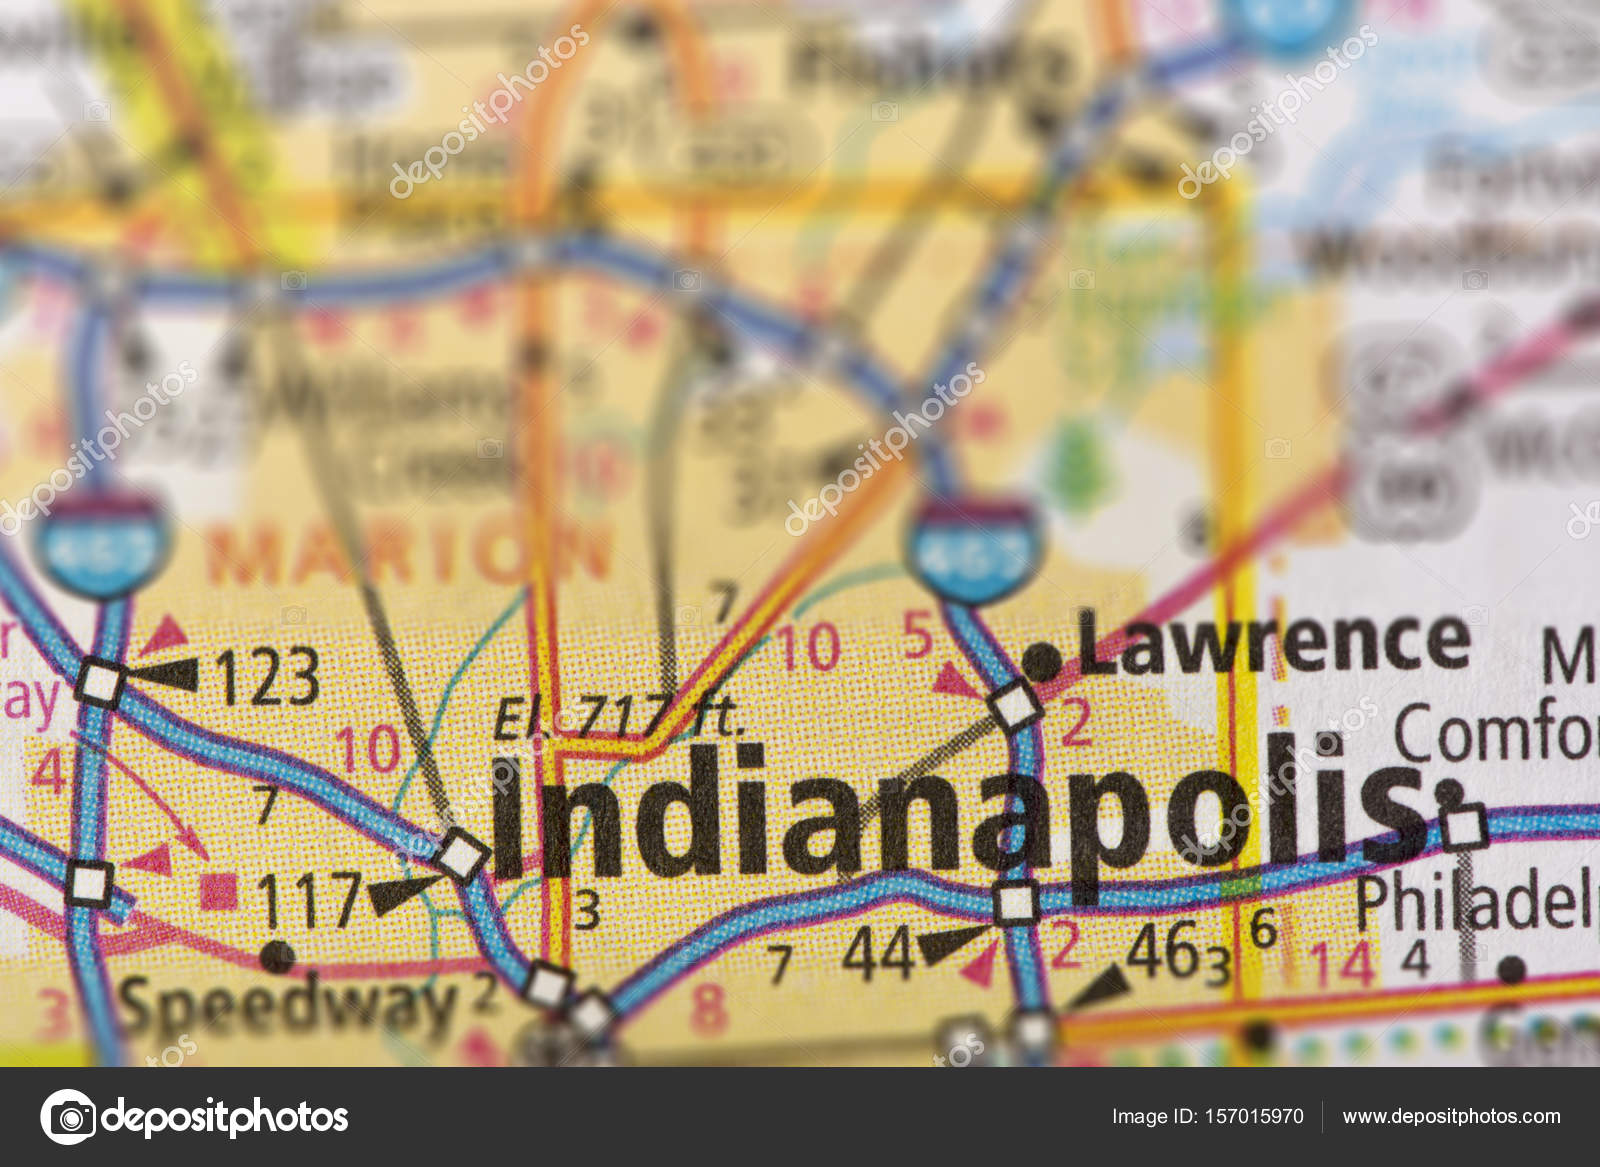 Indianapolis, Indiana on map — Stock Photo © icemanj #157015970 on new south wales on a map, butler on a map, st. simons on a map, indiana flag, chicago on a map, lowell on a map, missoula on a map, dearborn on a map, kankakee on a map, harrisburg pennsylvania on a map, friendswood on a map, coosa river on a map, indiana on us map, franklin county on a map, brown county on a map, guangxi on a map, plains indians on a map, south williamsport on a map, kokomo on a map, vanderbilt on a map,